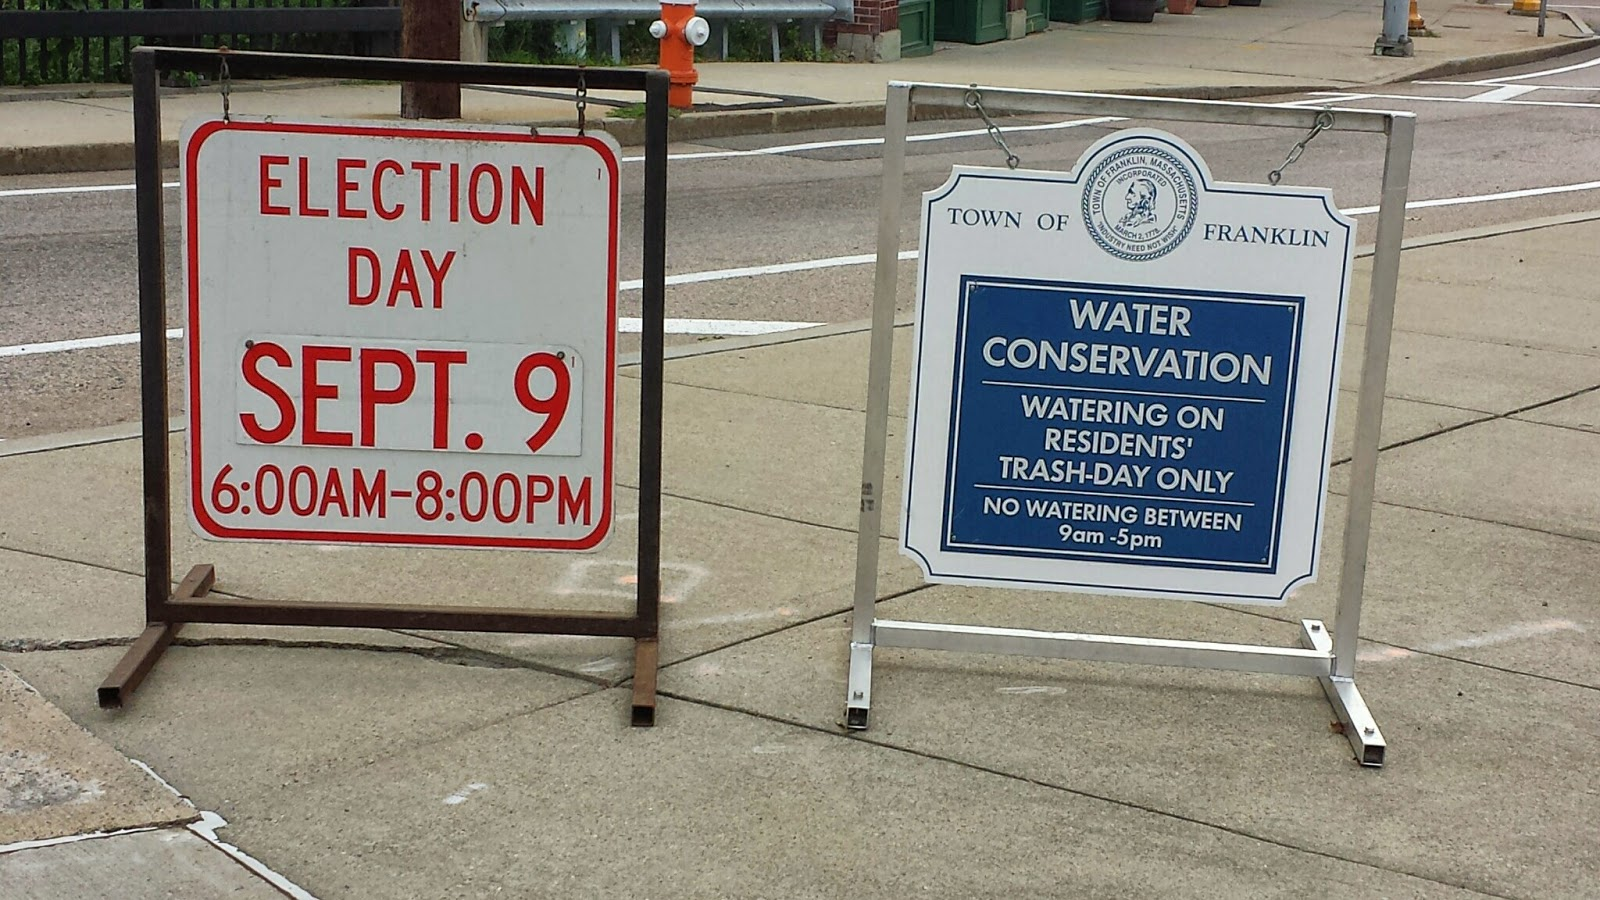 yes, the election has come and gone but the water conservation measures remain